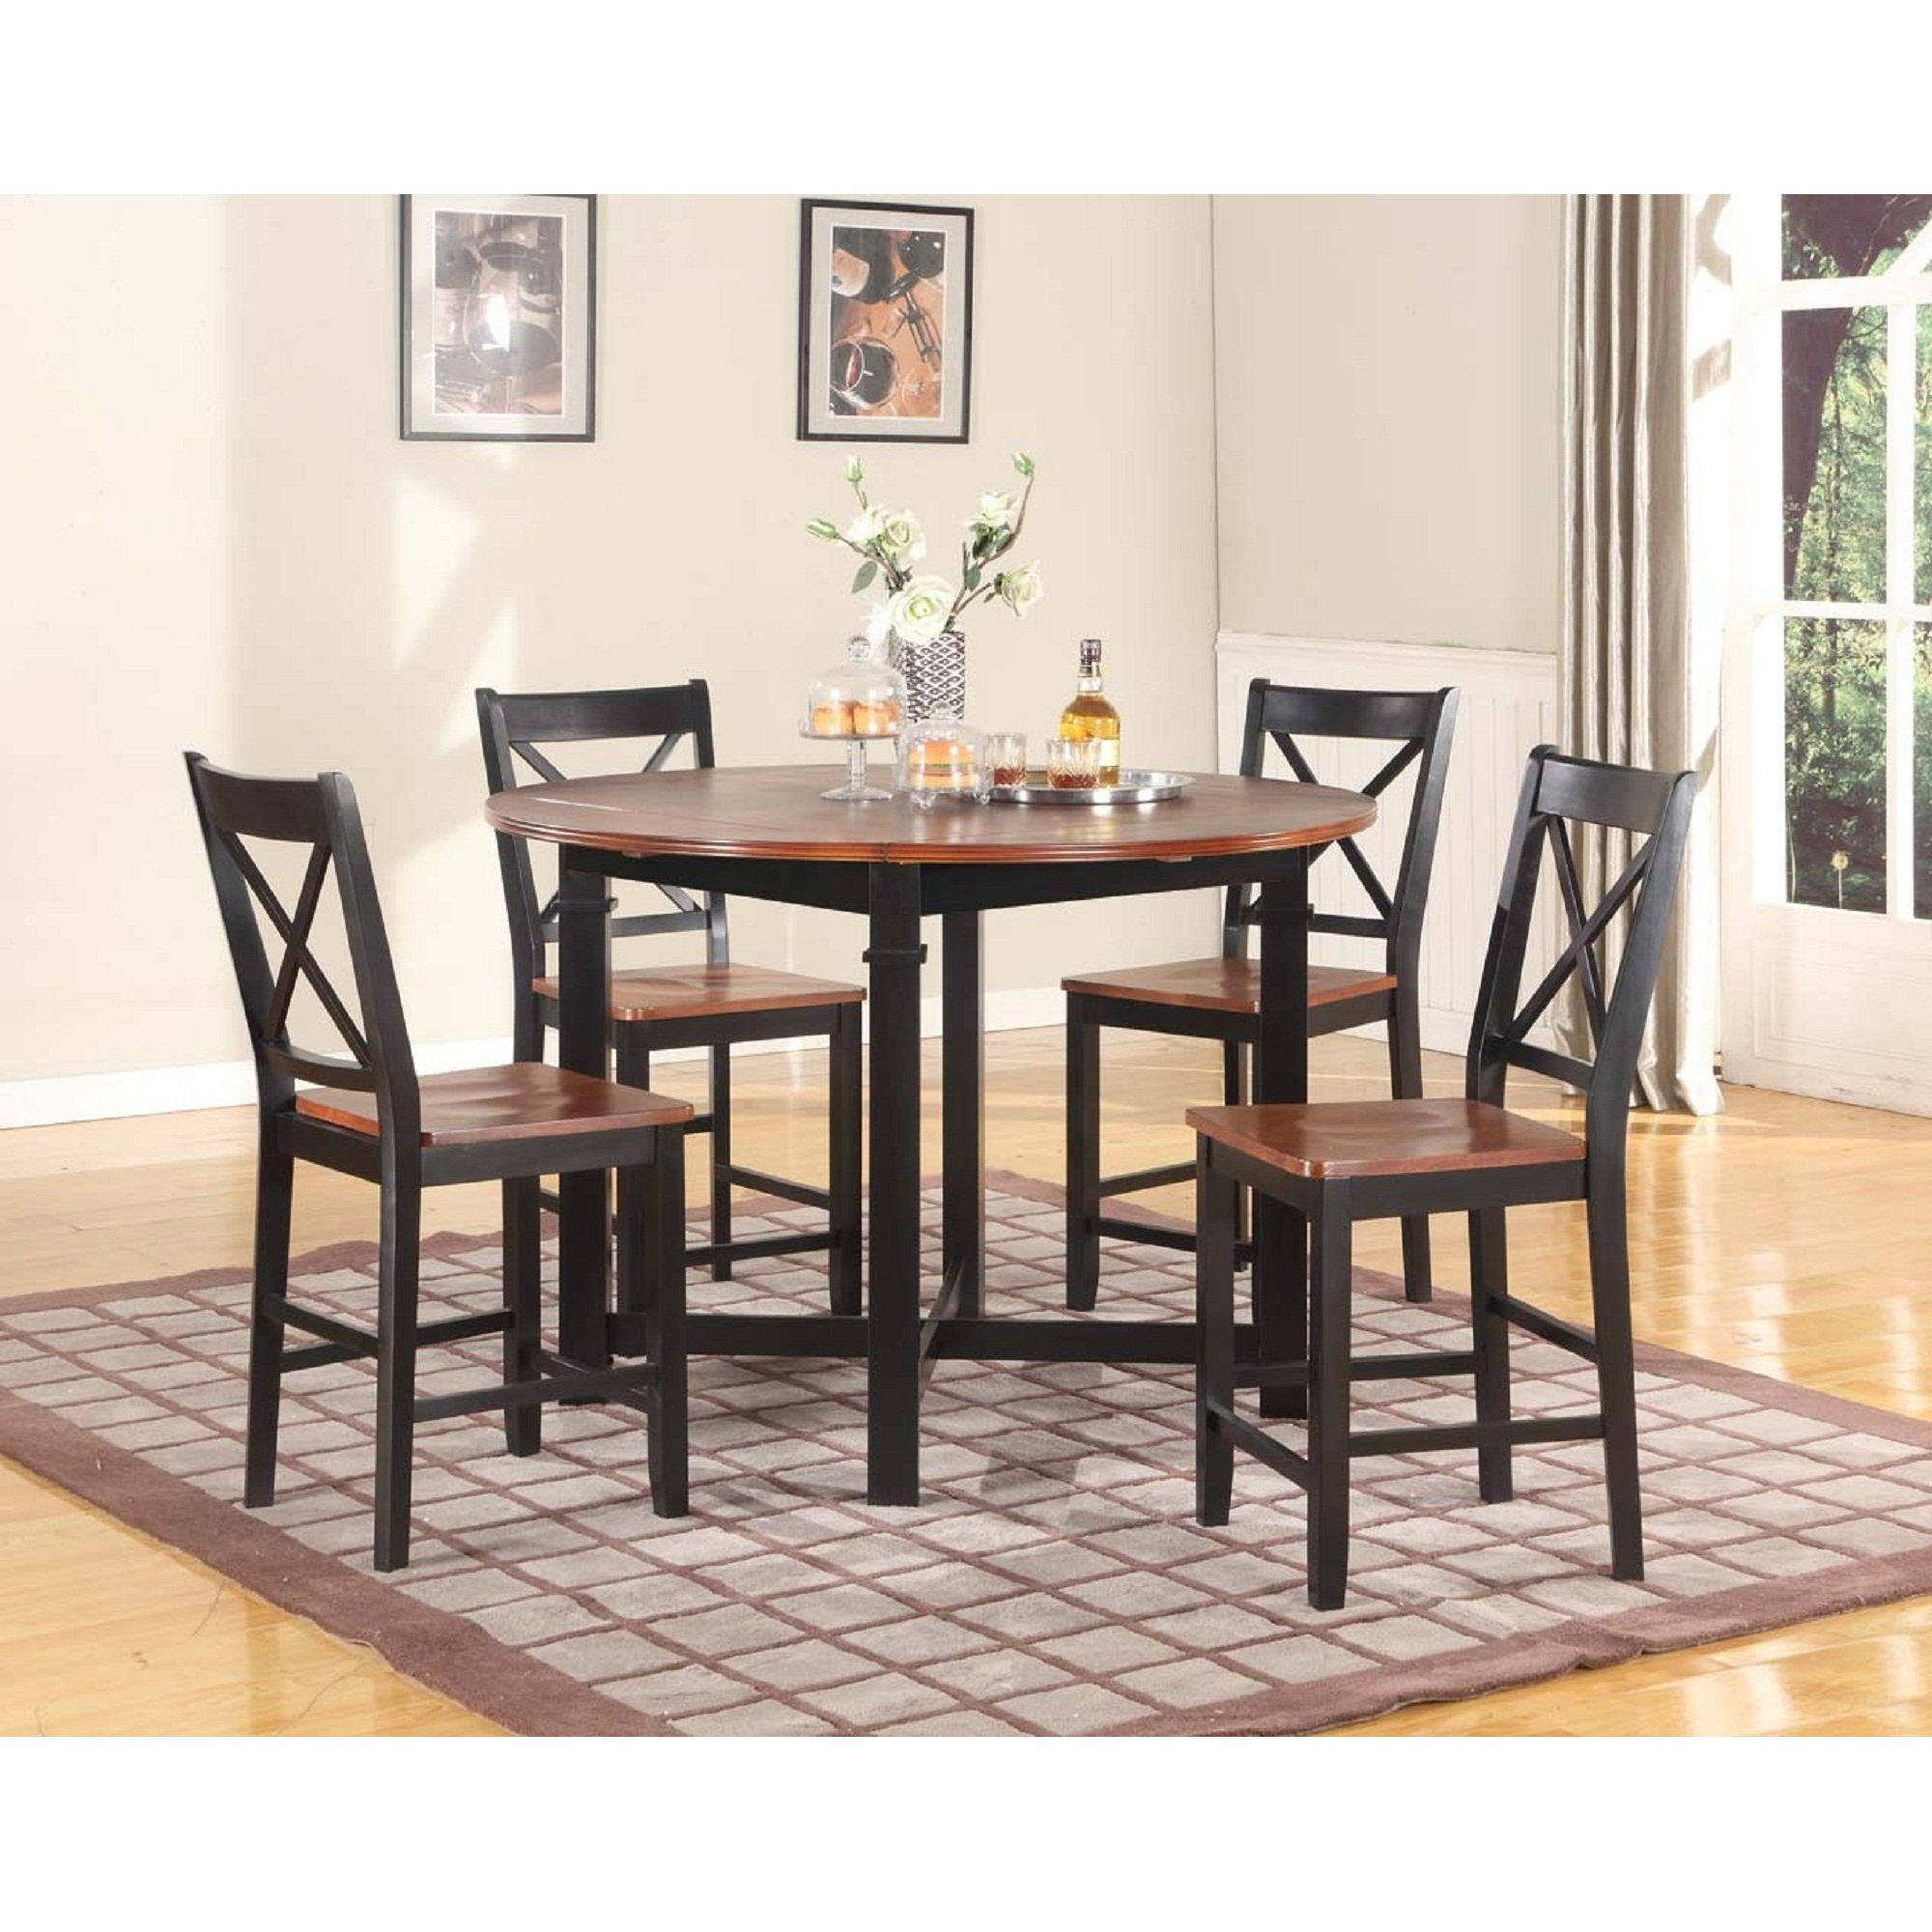 5Pc Wood Drop Leaf Counter Height Pub Table With 4 Stools  Cherry Adorable Dining Room Table Leaf Replacement Inspiration Design